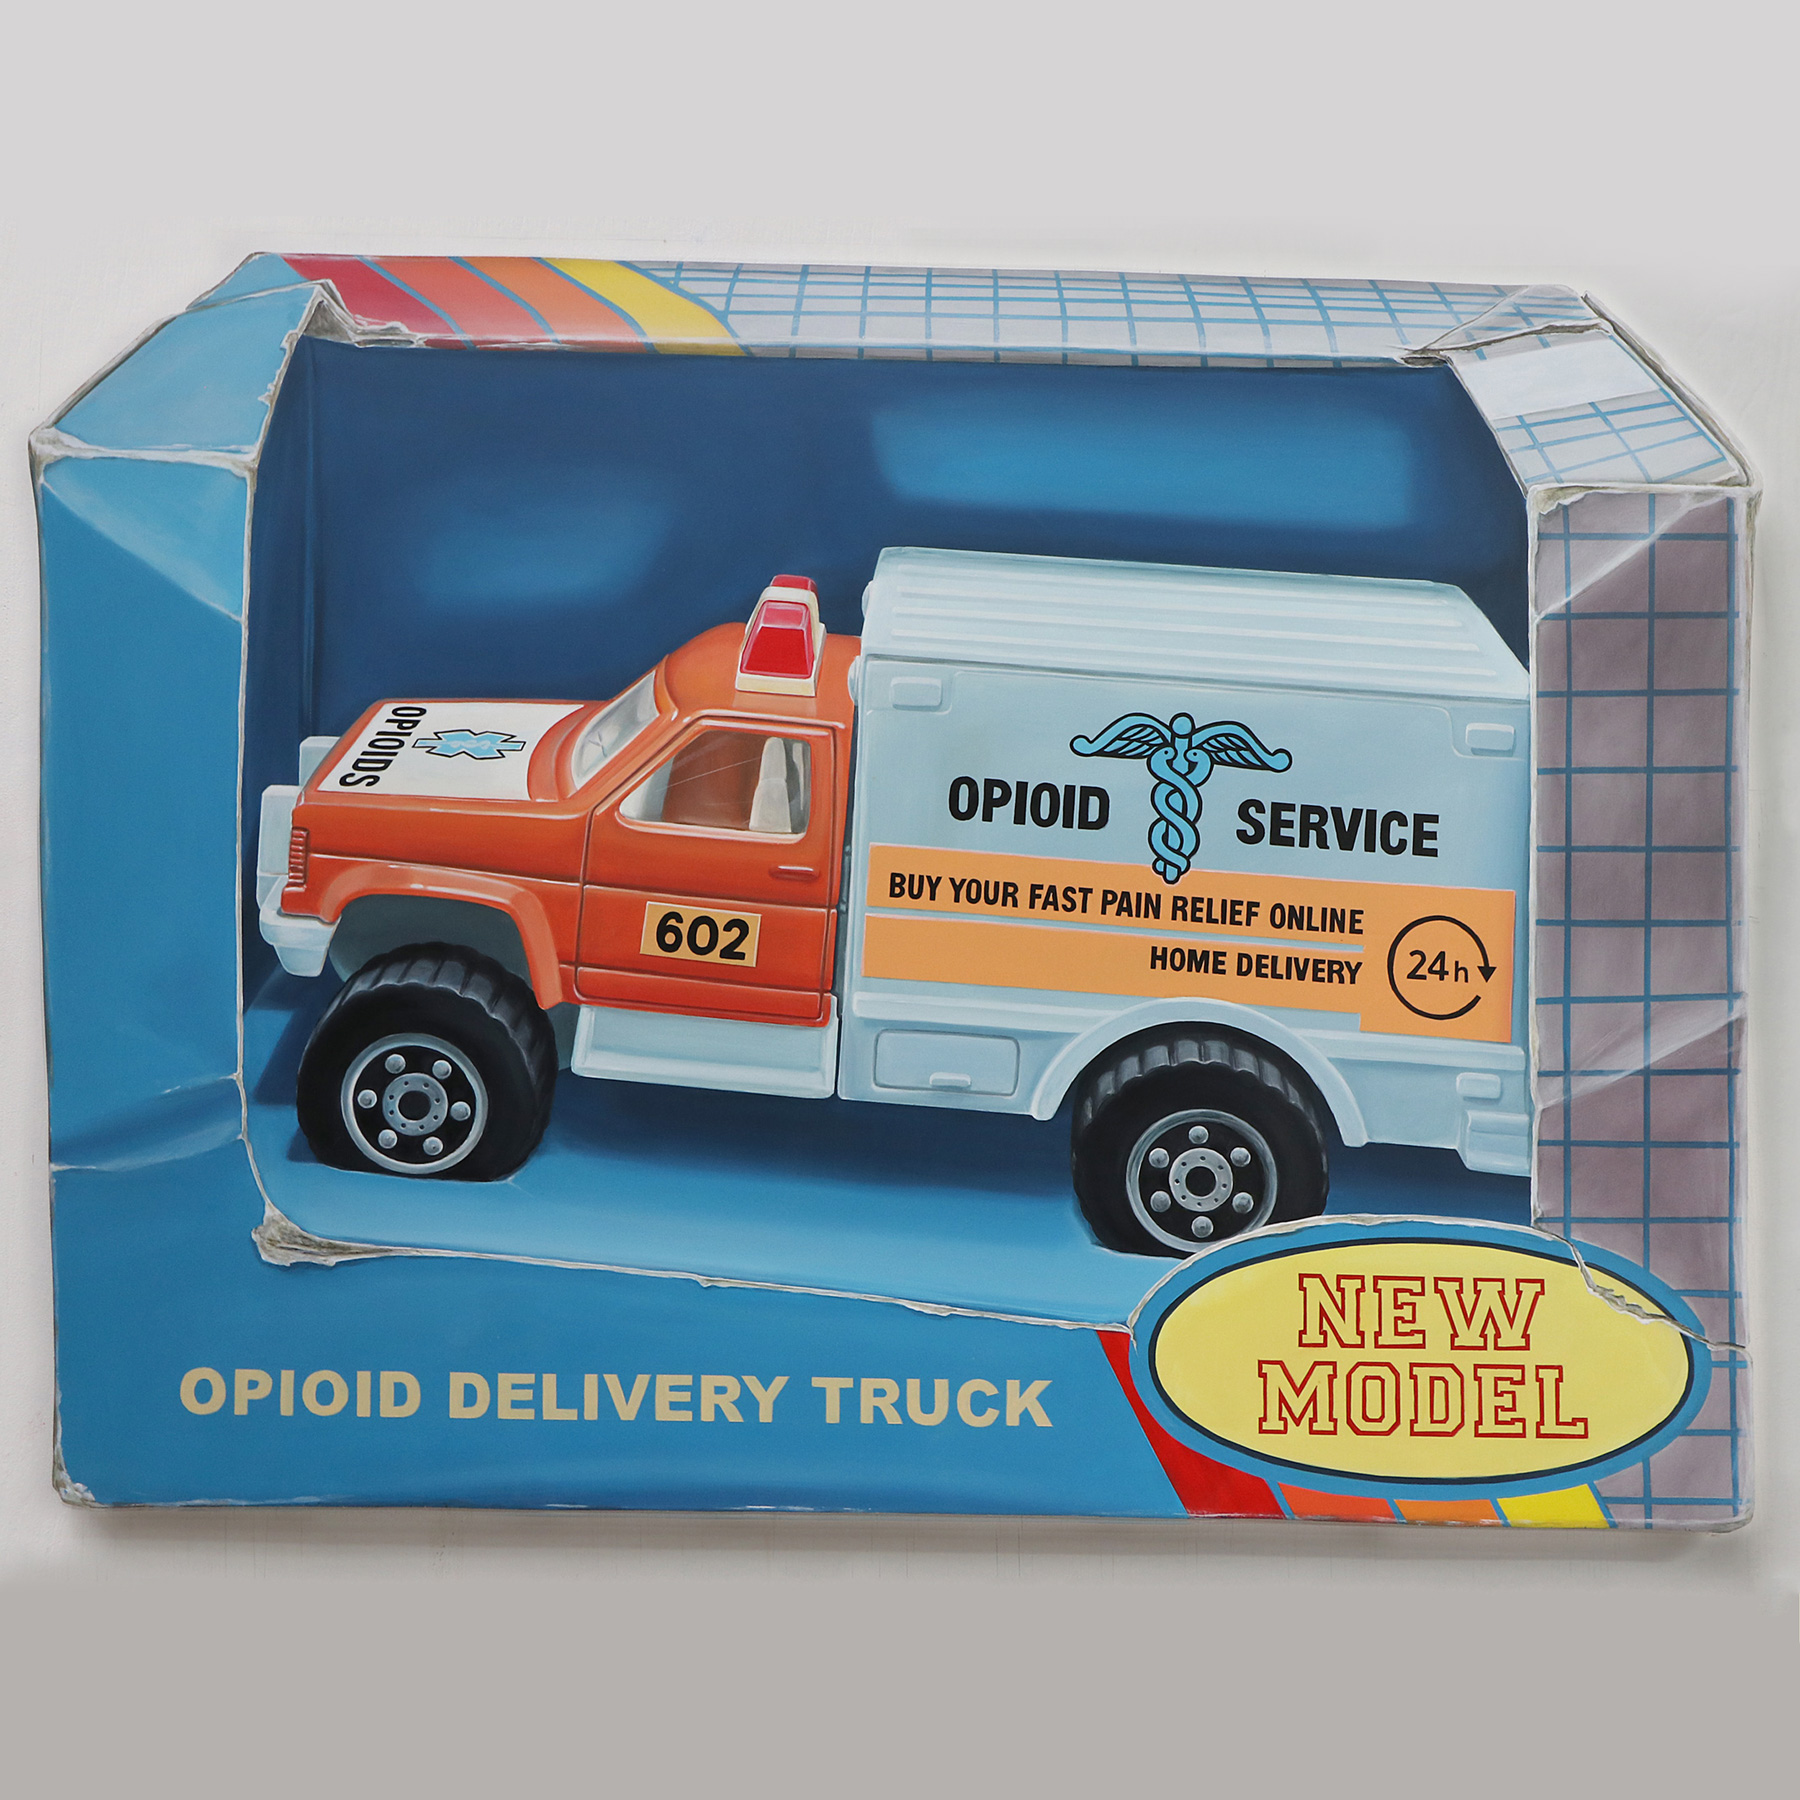 Opioid Delivery Truck painting 3d Leon Keer